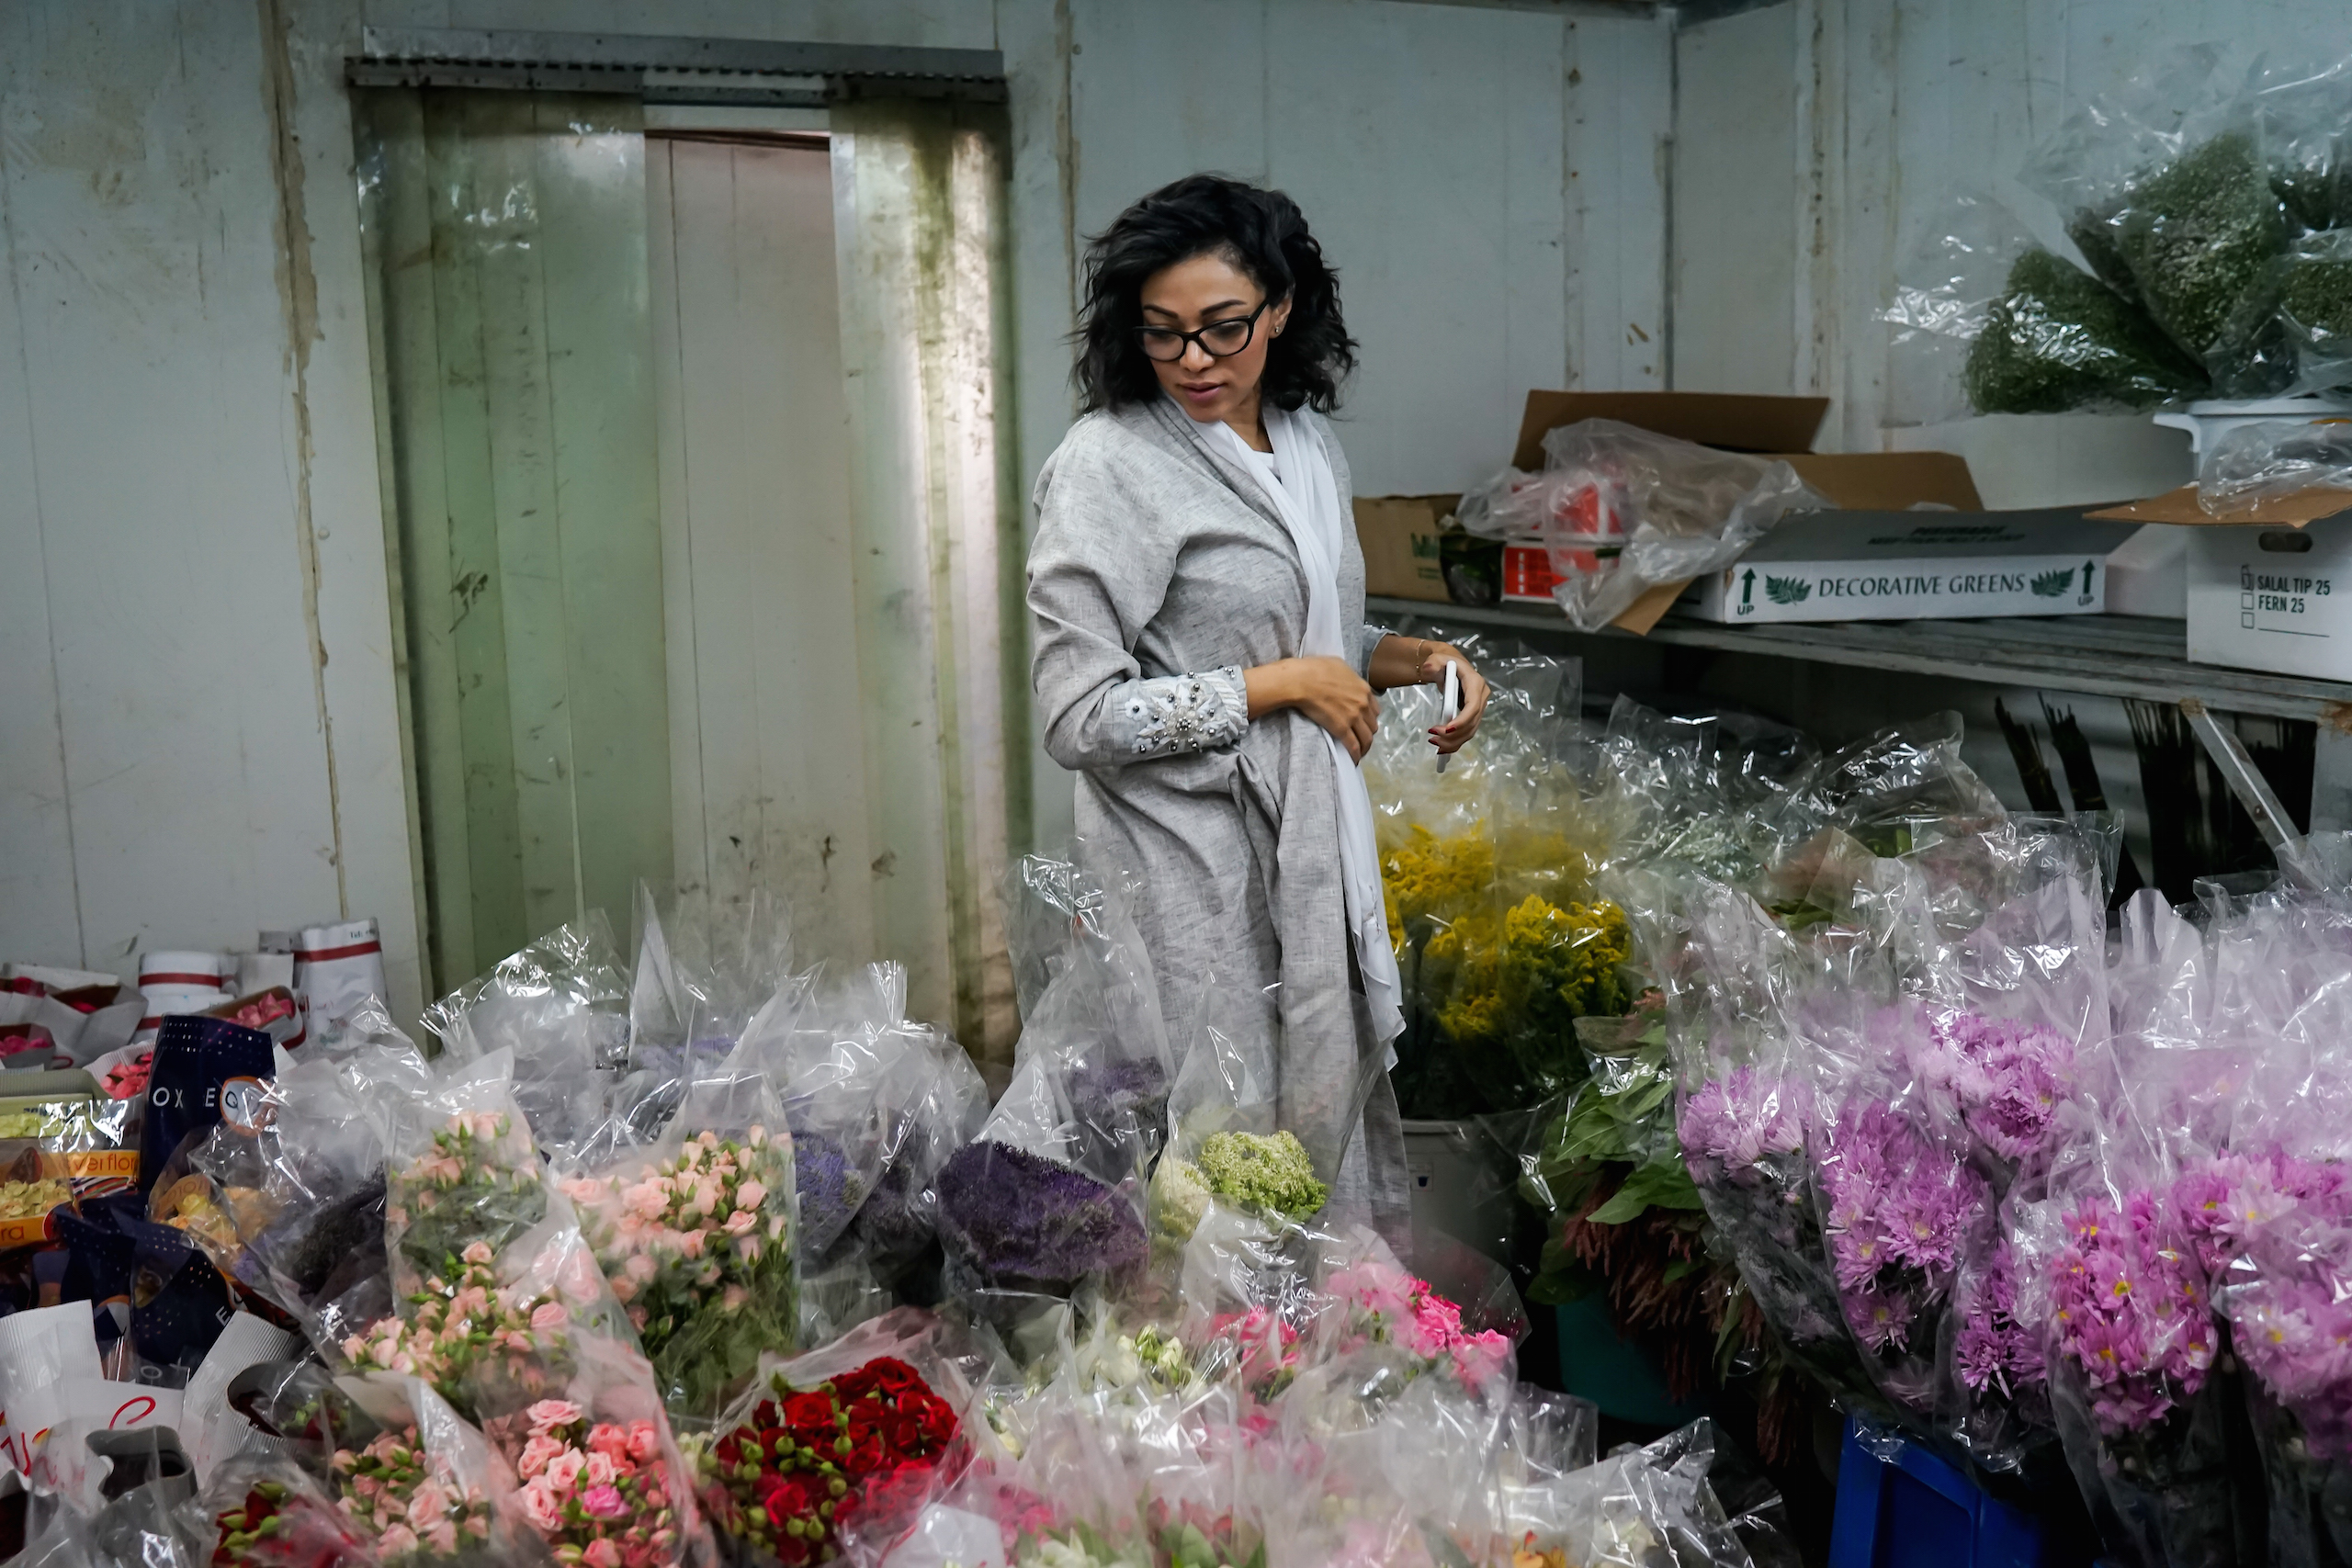 Ghadeer, a well-known wedding planner in Saudi Arabia, chooses flowers for an upcoming event at a florist in Jeddah, May 2016. A friend of the photographer, she says she has never been married or in love.